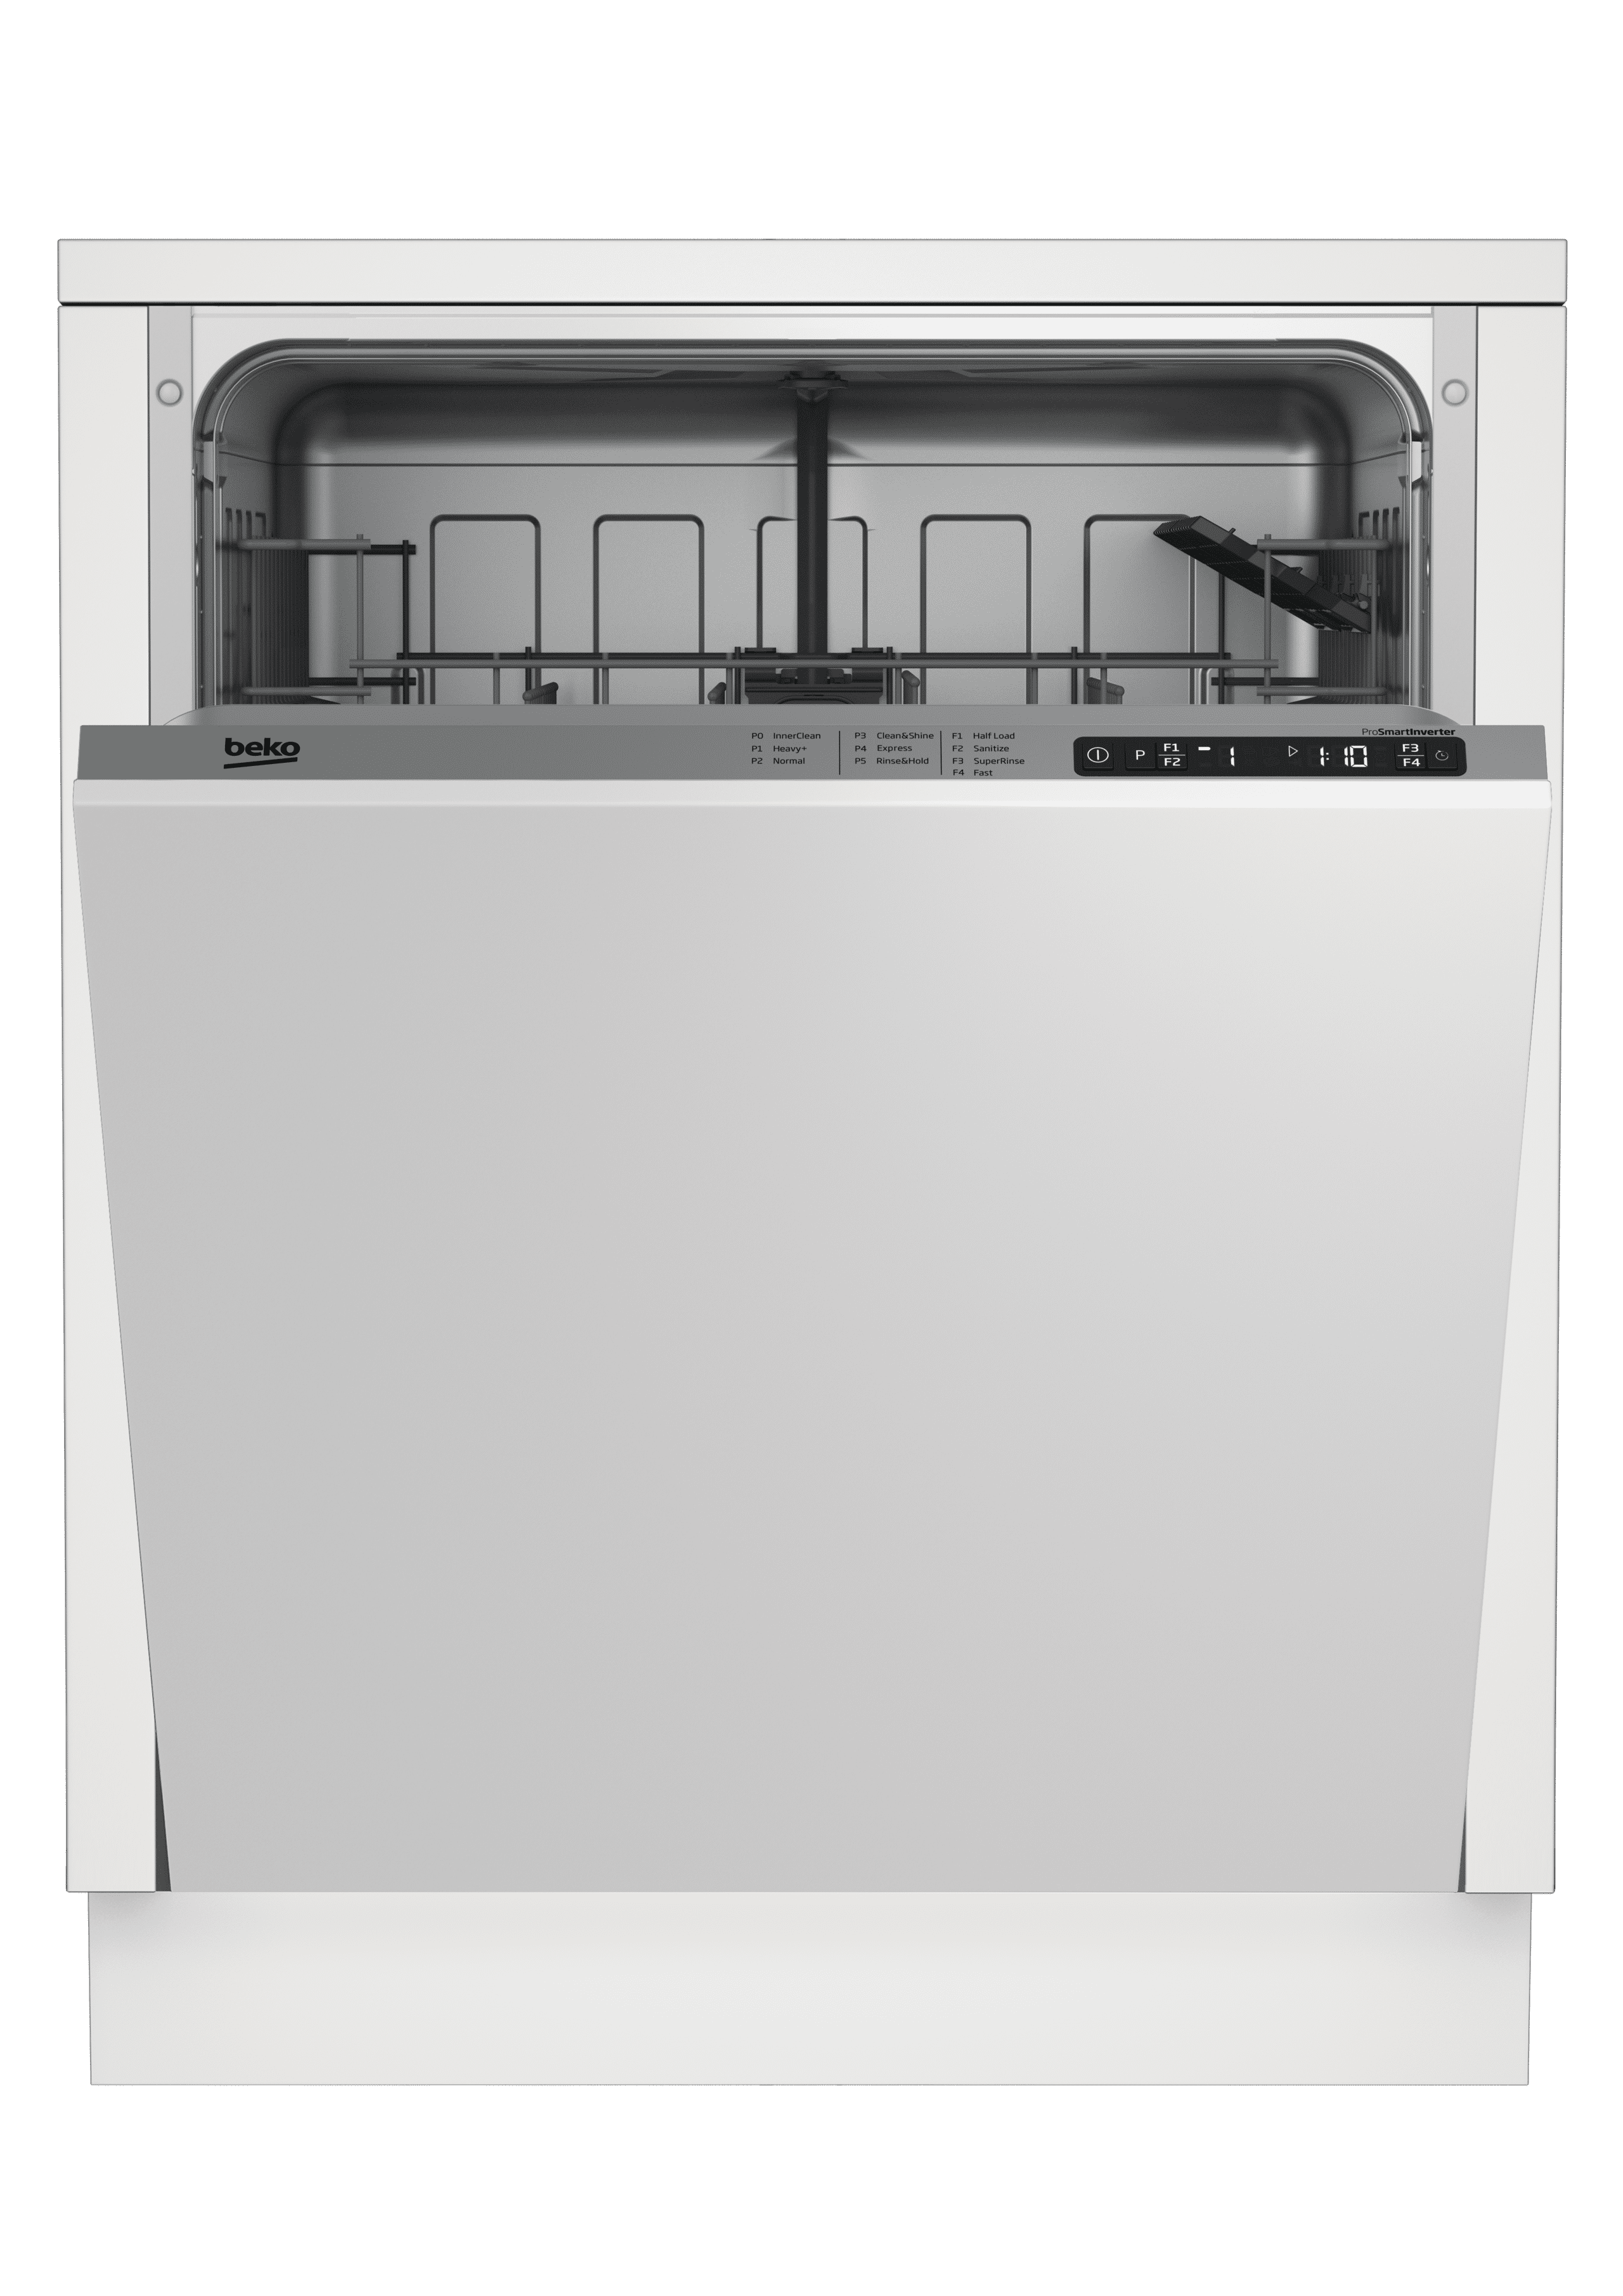 Standard Tub Dishwasher with 14 place settings, 48 dBA Fully integrated panel ready